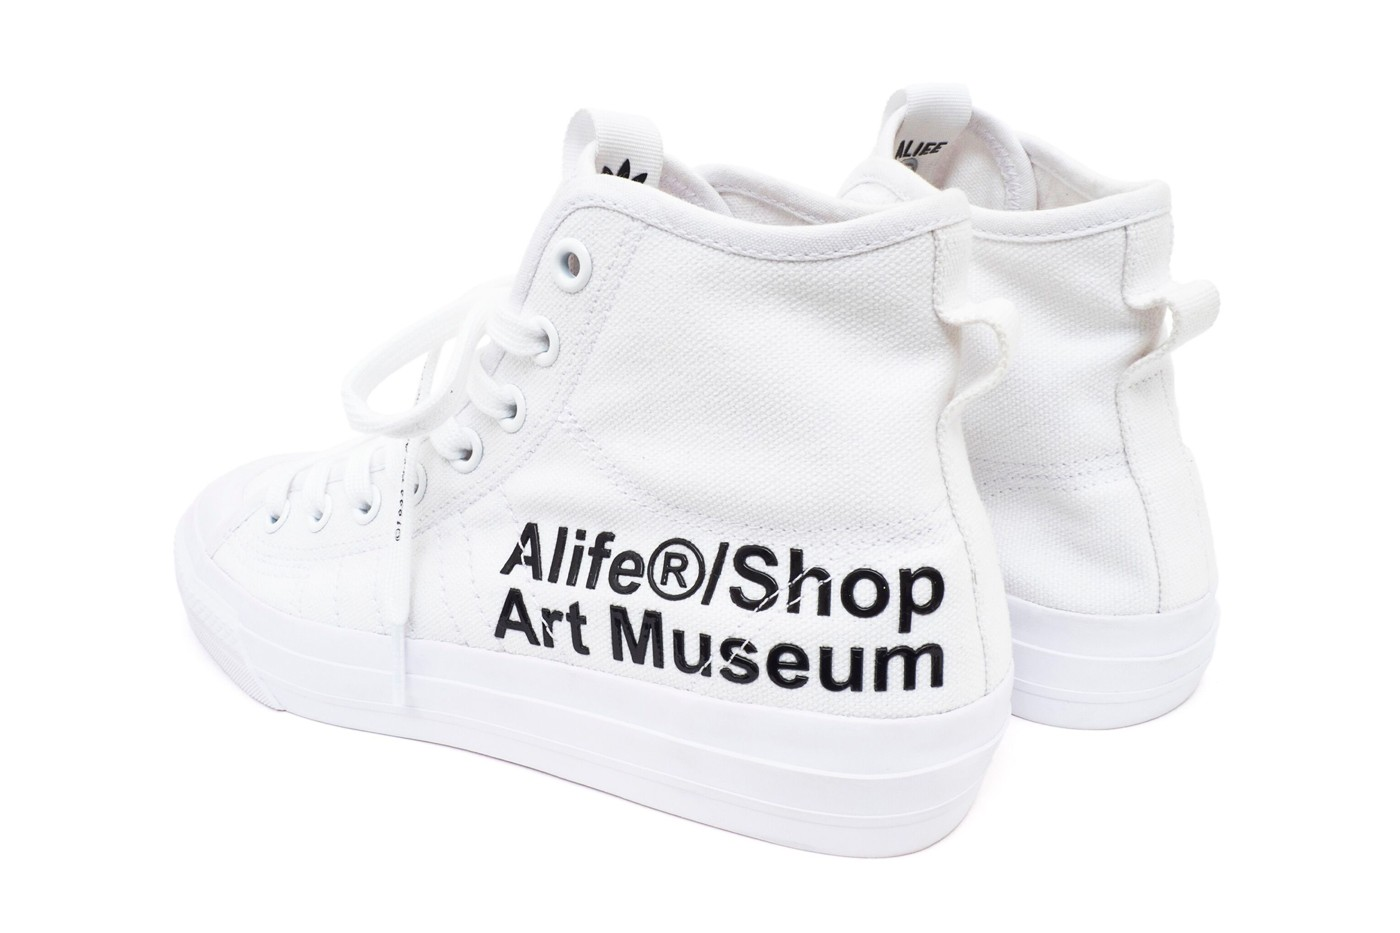 adidas Consortium Alife Nizza Hi Makeover Info NYC new york city streetwear sneakers originals museum shoes artist proof